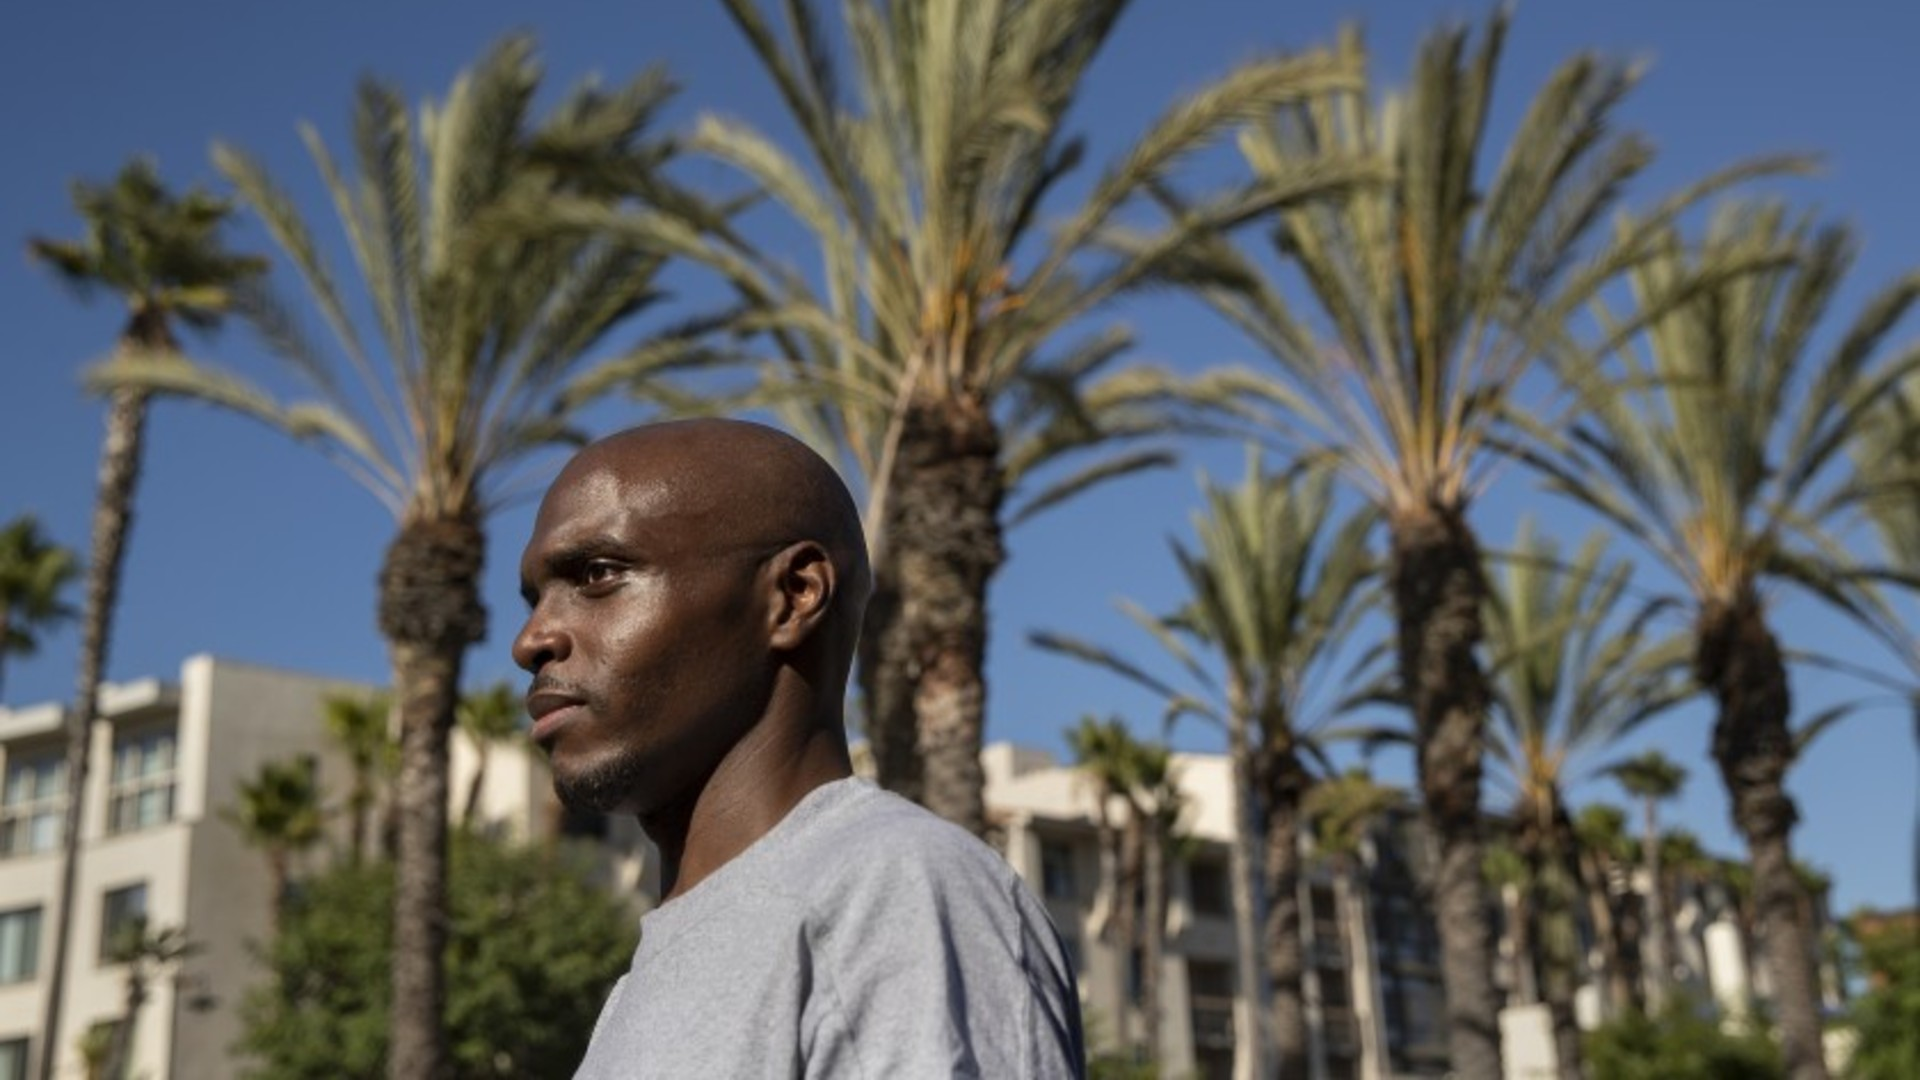 Rod Thompson Sr. 35, who was recently released early from Avenal State Prison because of the coronavirus outbreak, took Amtrak to L.A.'s Union Station after his release, even though he had tested positive for COVID-19 in May and was not sure if he still carried the virus. (Mel Melcon / Los Angeles Times)